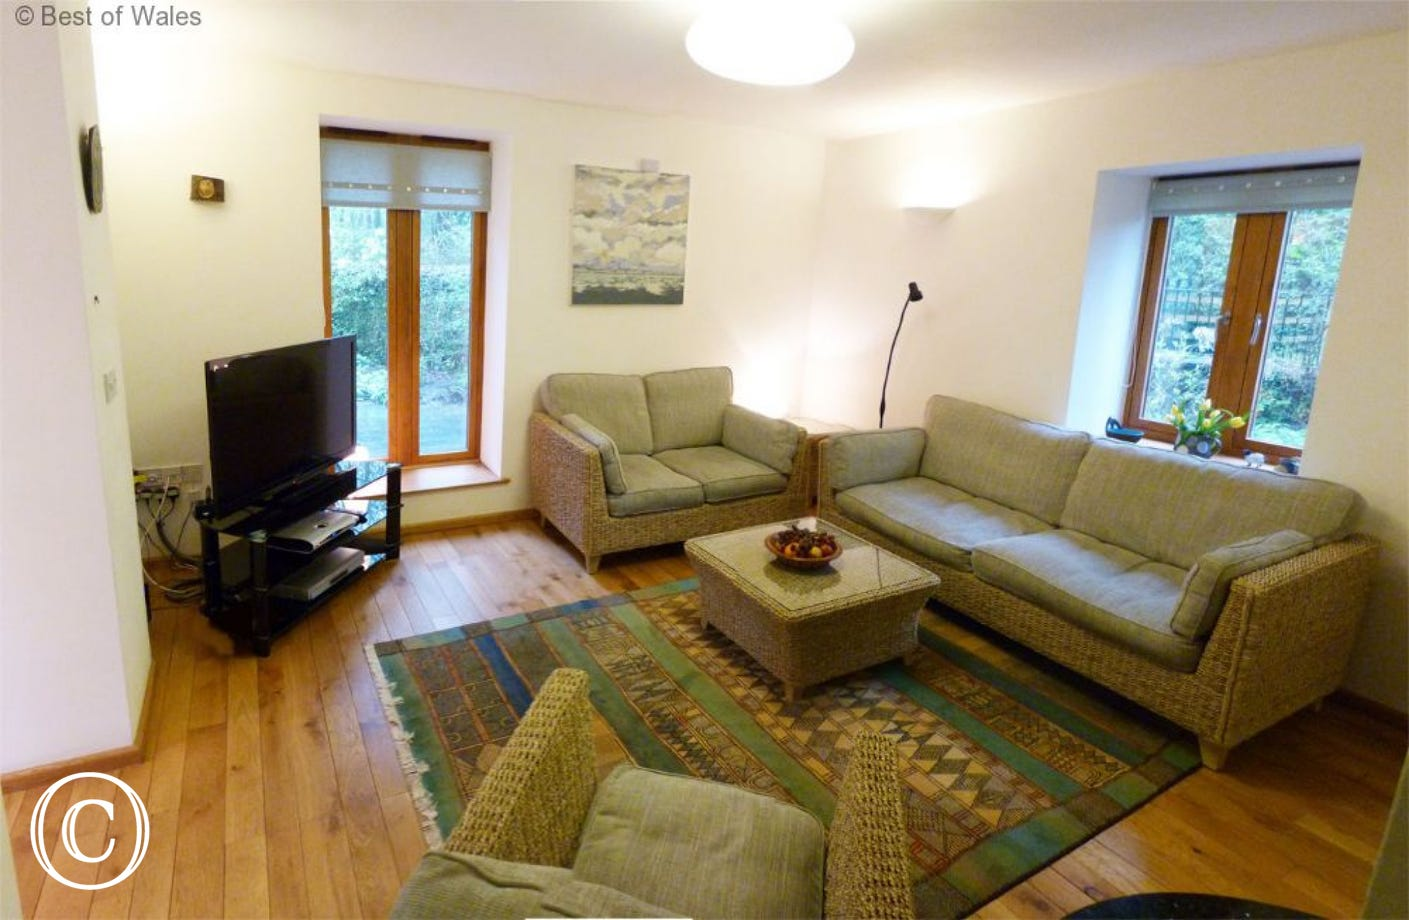 Lounge with stove at this cosy self catering, Brecon Beacon